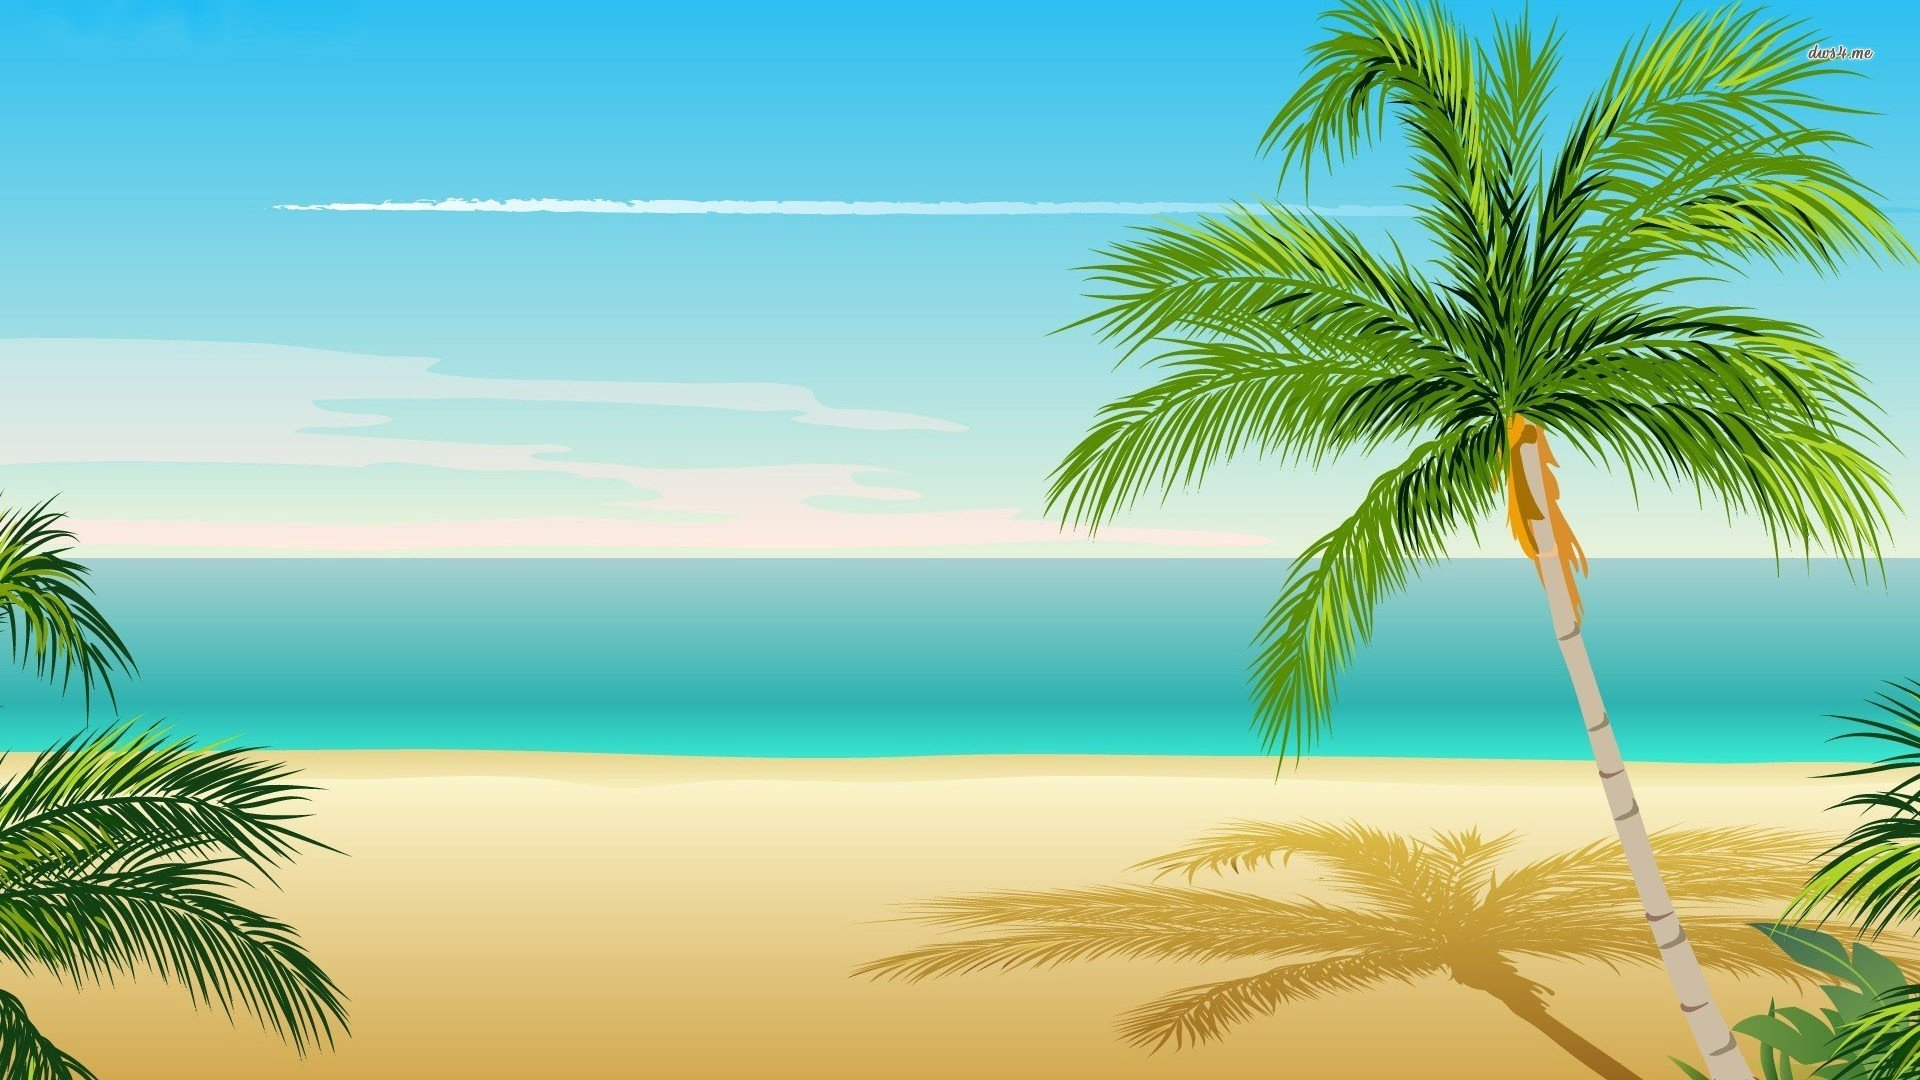 Palm Tree Wallpapers HD Pictures Live HD Wallpaper HQ 1920x1080